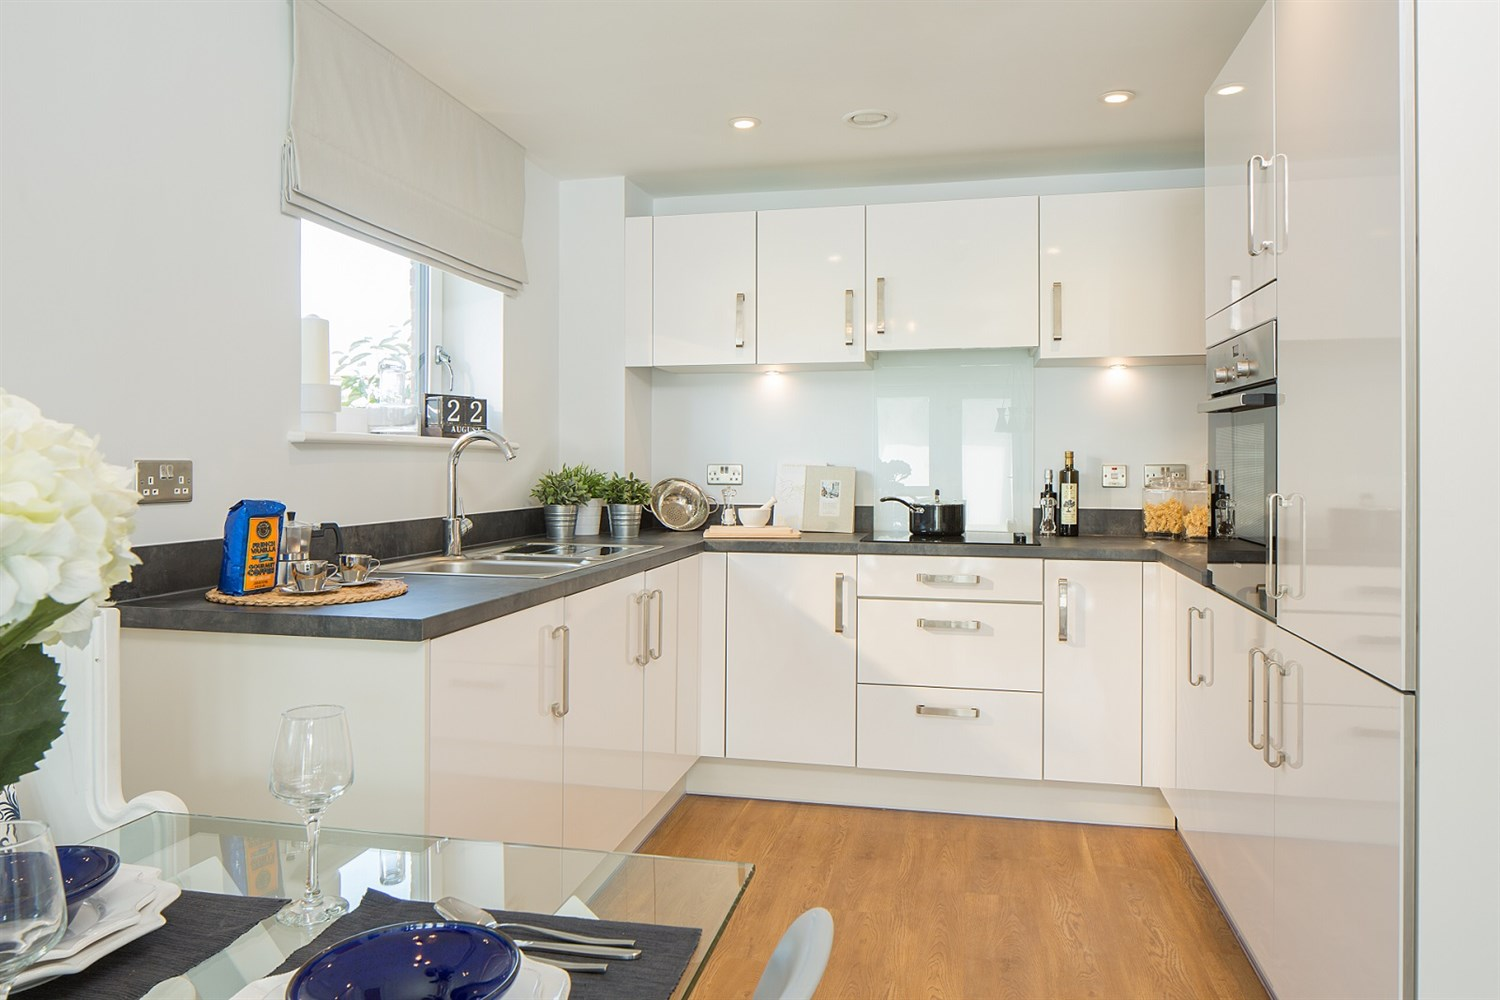 The Kew at Barkham Place - 2 bed terrace, Arborfield Green, RG2 9TB